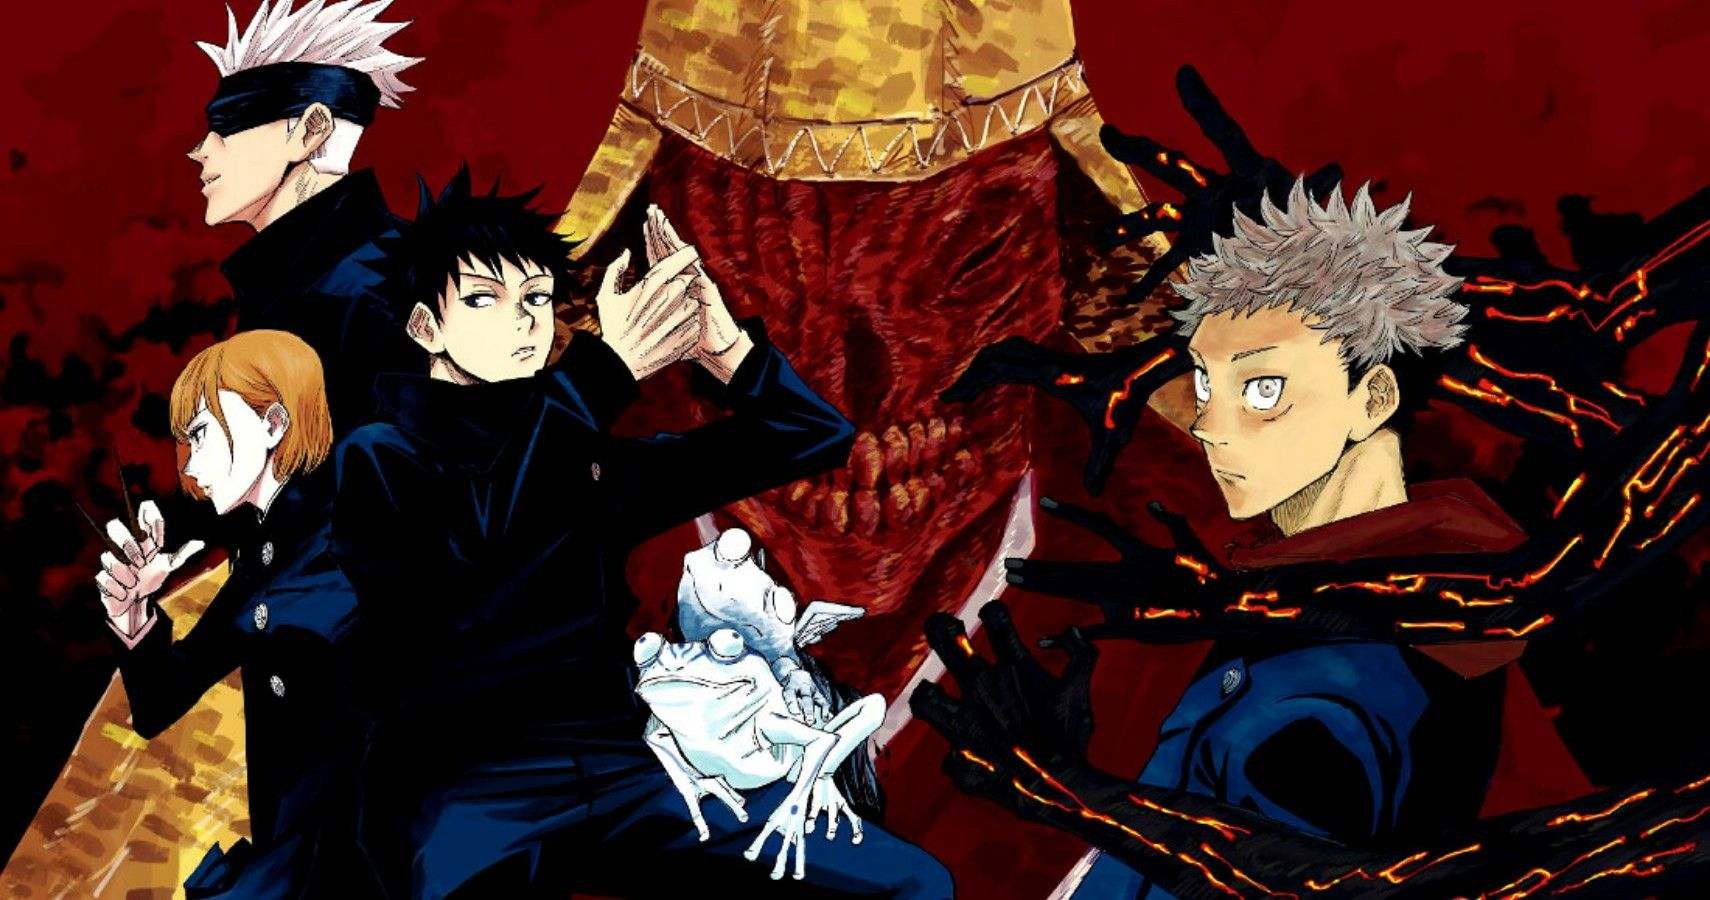 First Demonic Teaser Trailer for Jujutsu Kaisen Anime Surfaces